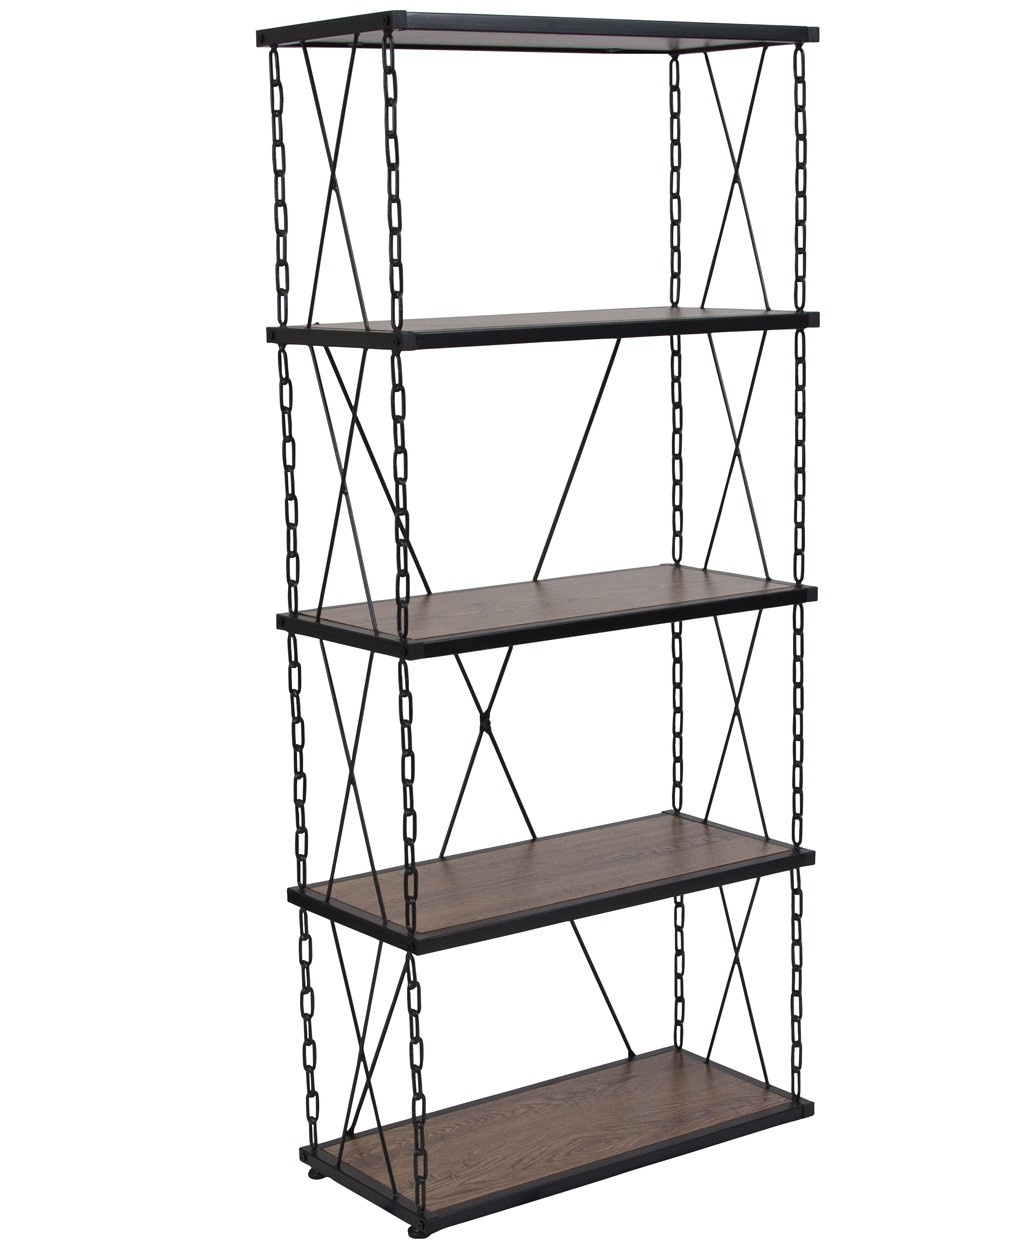 Mayfair Tall Salon Retail Display Unit